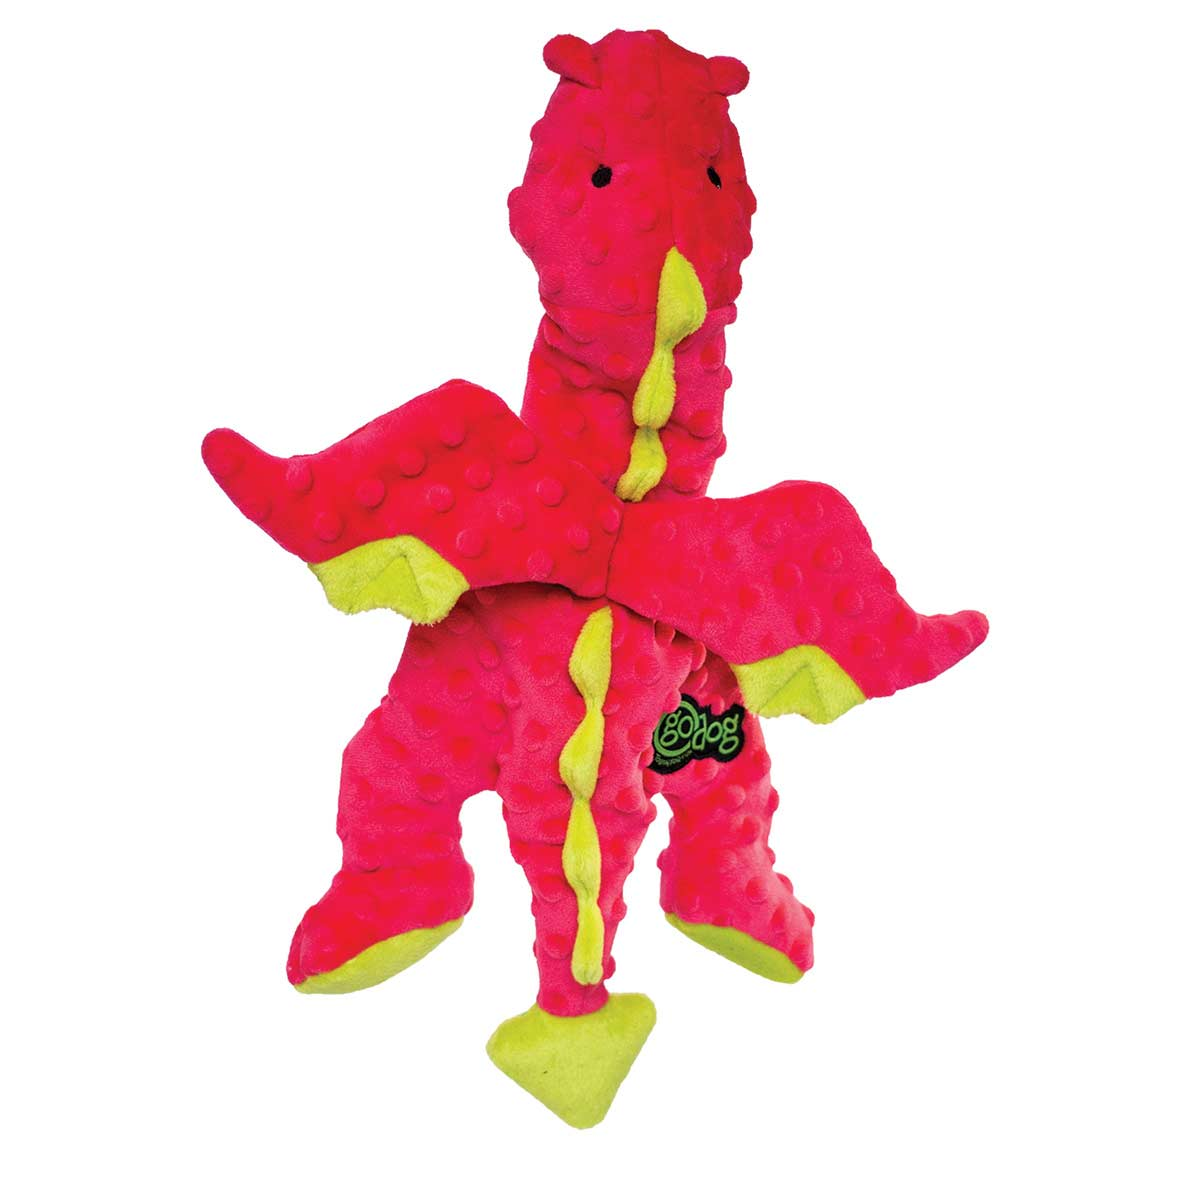 goDog Coral Small Dragons Flats Dog Toy with Chew Guard